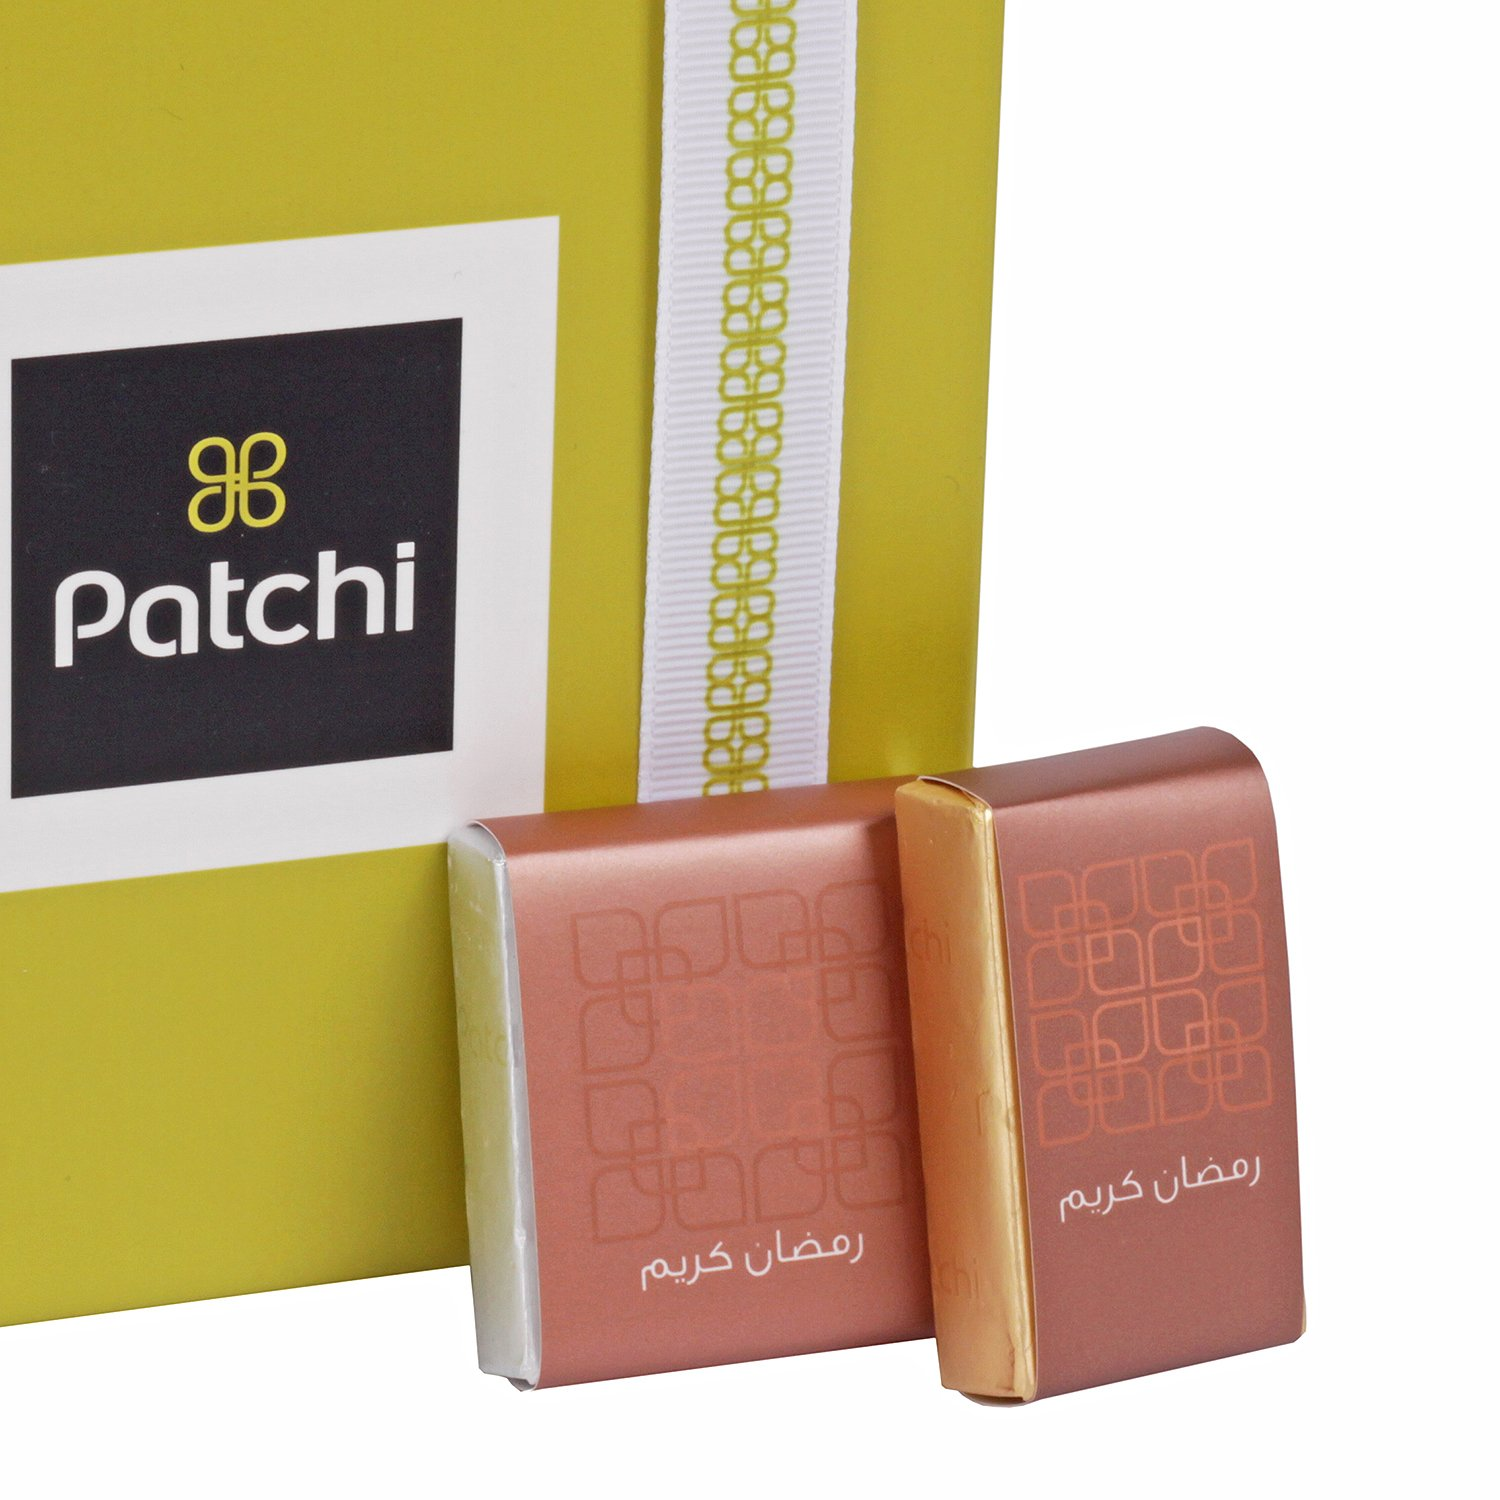 Amazon.com : Ramadan Kareem Gift Box: Patchi Chocolate Collection ...